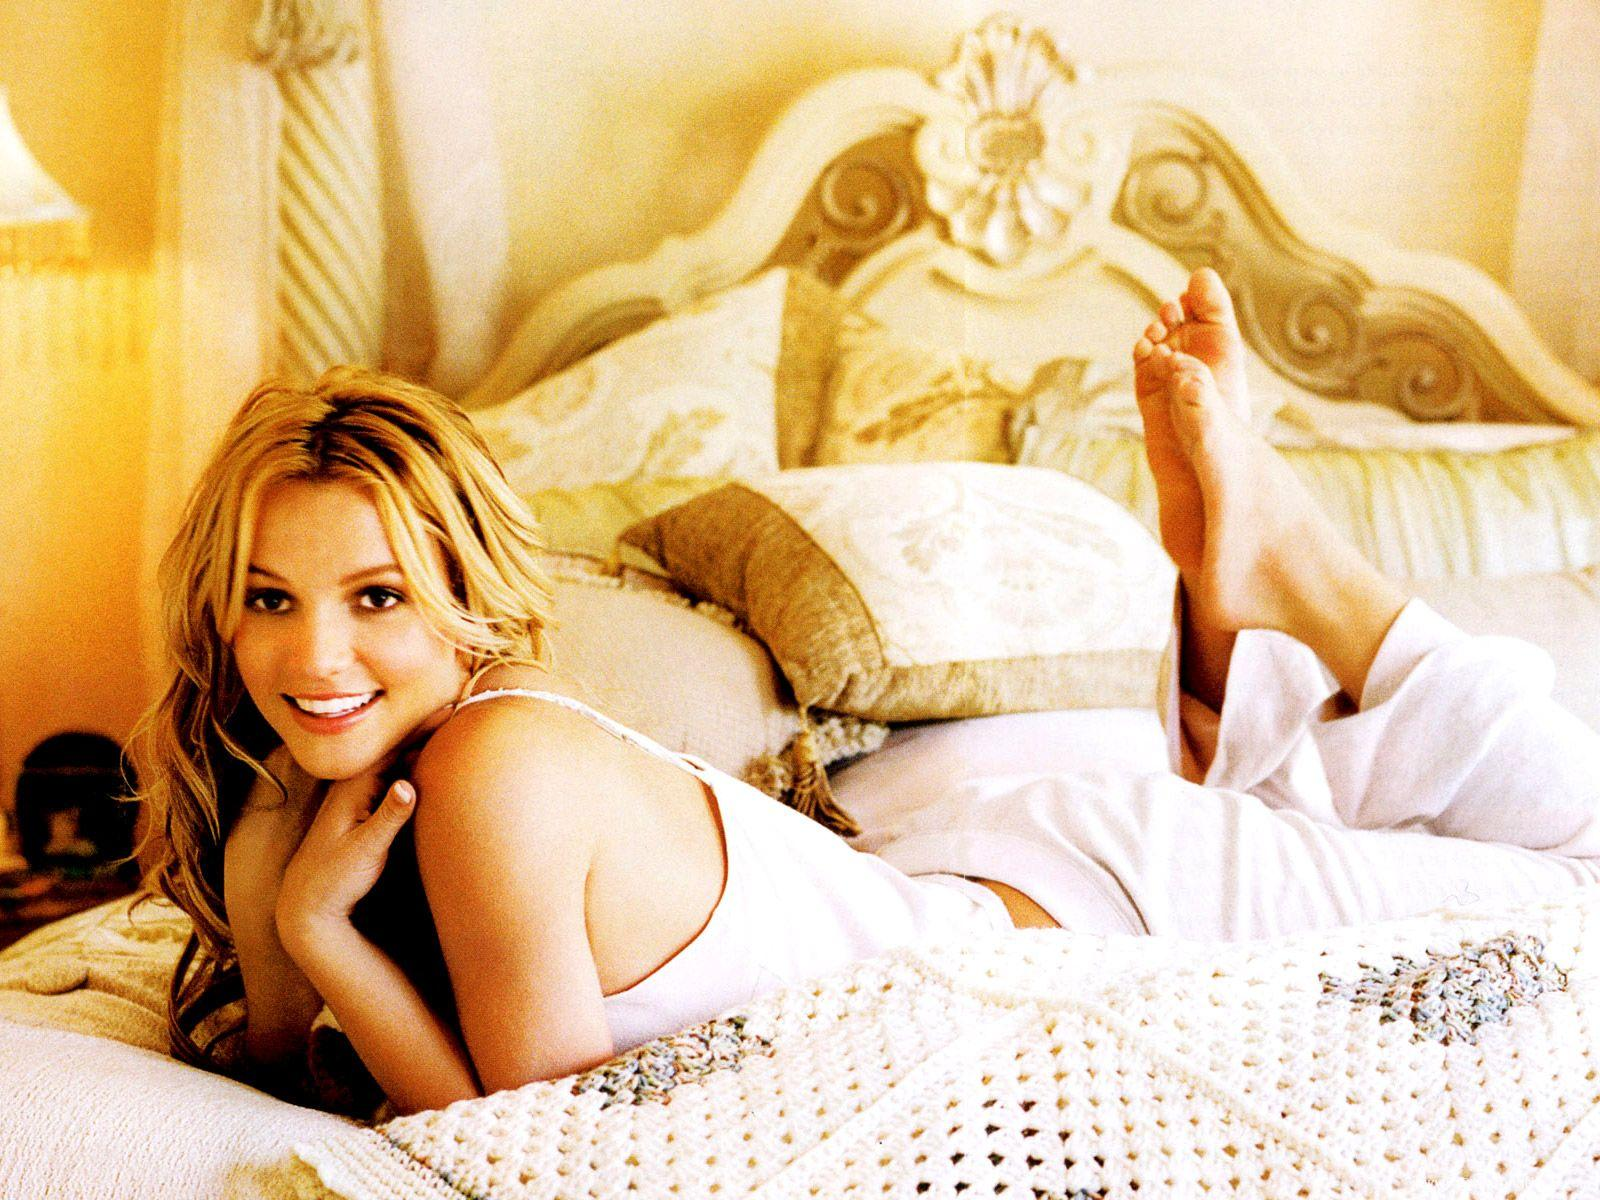 http://2.bp.blogspot.com/-Dho9-i1E9Rs/TxJUzYhdzkI/AAAAAAAAISA/6gJMDZ5ZVK8/s1600/britney_spears_hollywood_singer_wallpaper-01.jpg